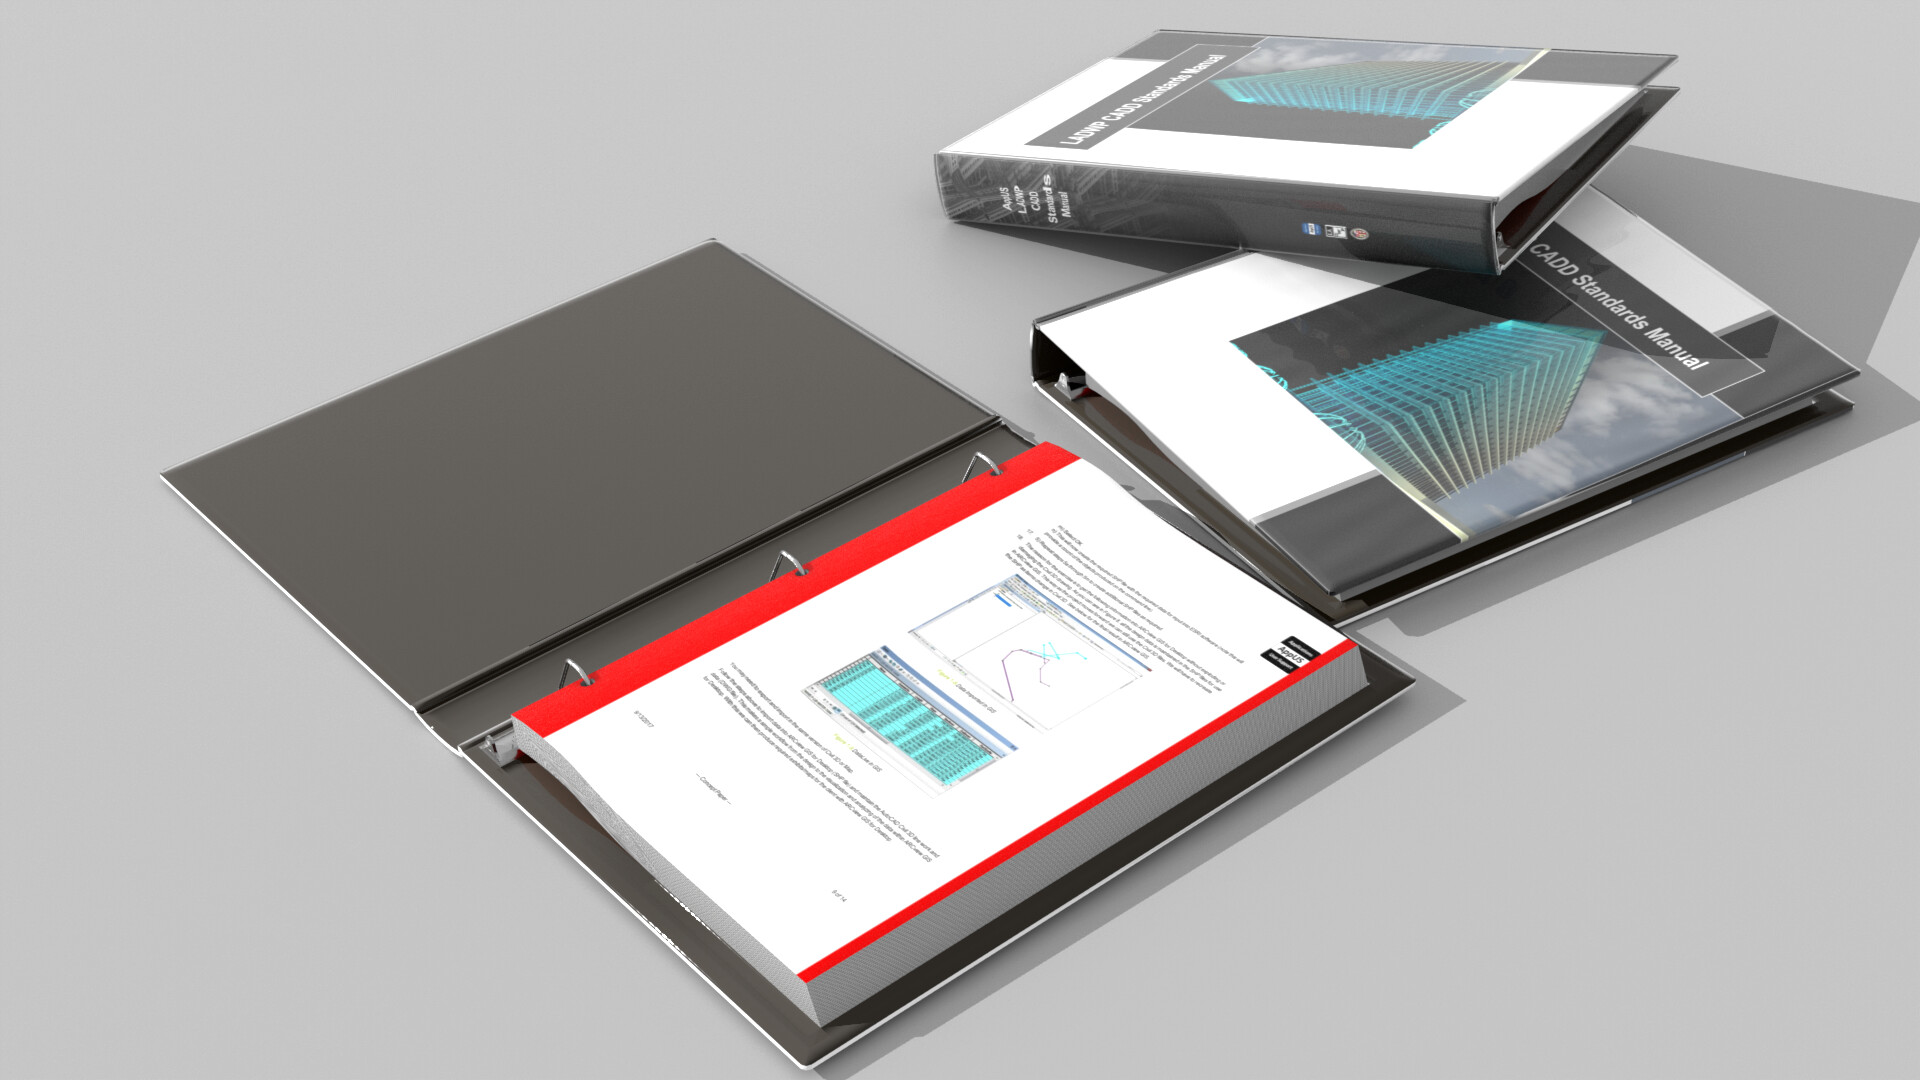 Technical documentation pre-viz - this is the final design of the AppUS Technical Documentation Binder.